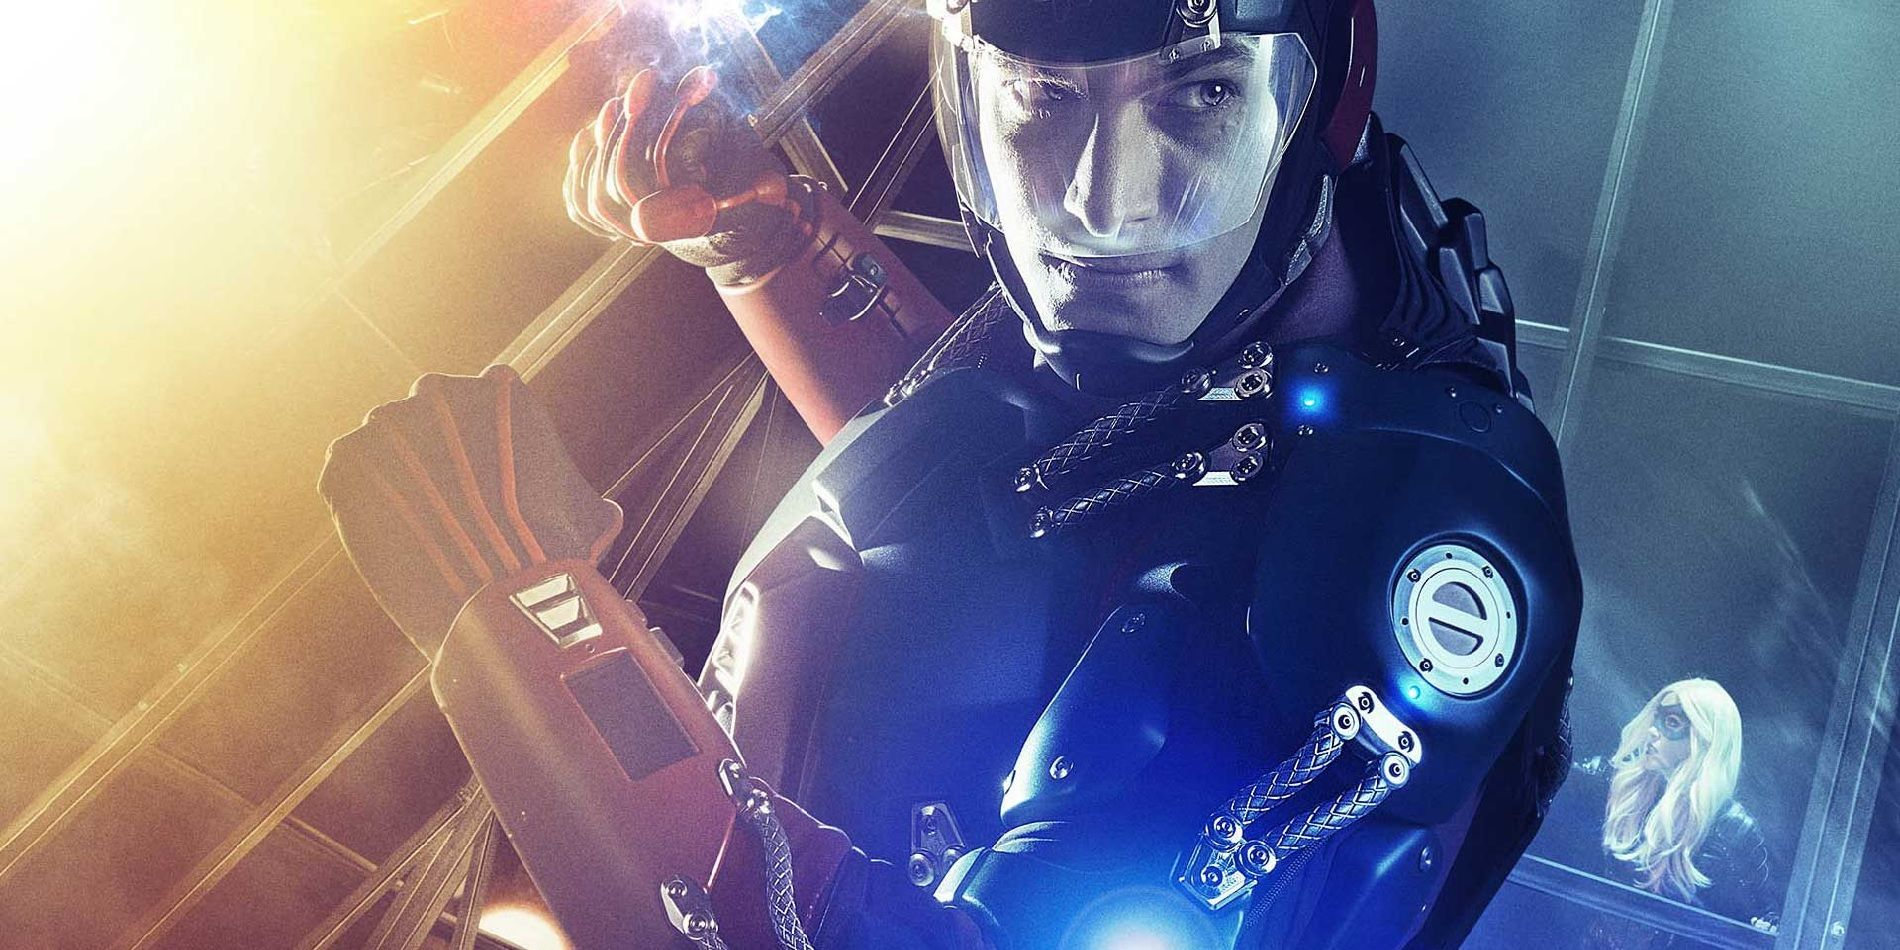 Crisis on Infinite Earths May Involve Time Travel, According to Brandon Routh